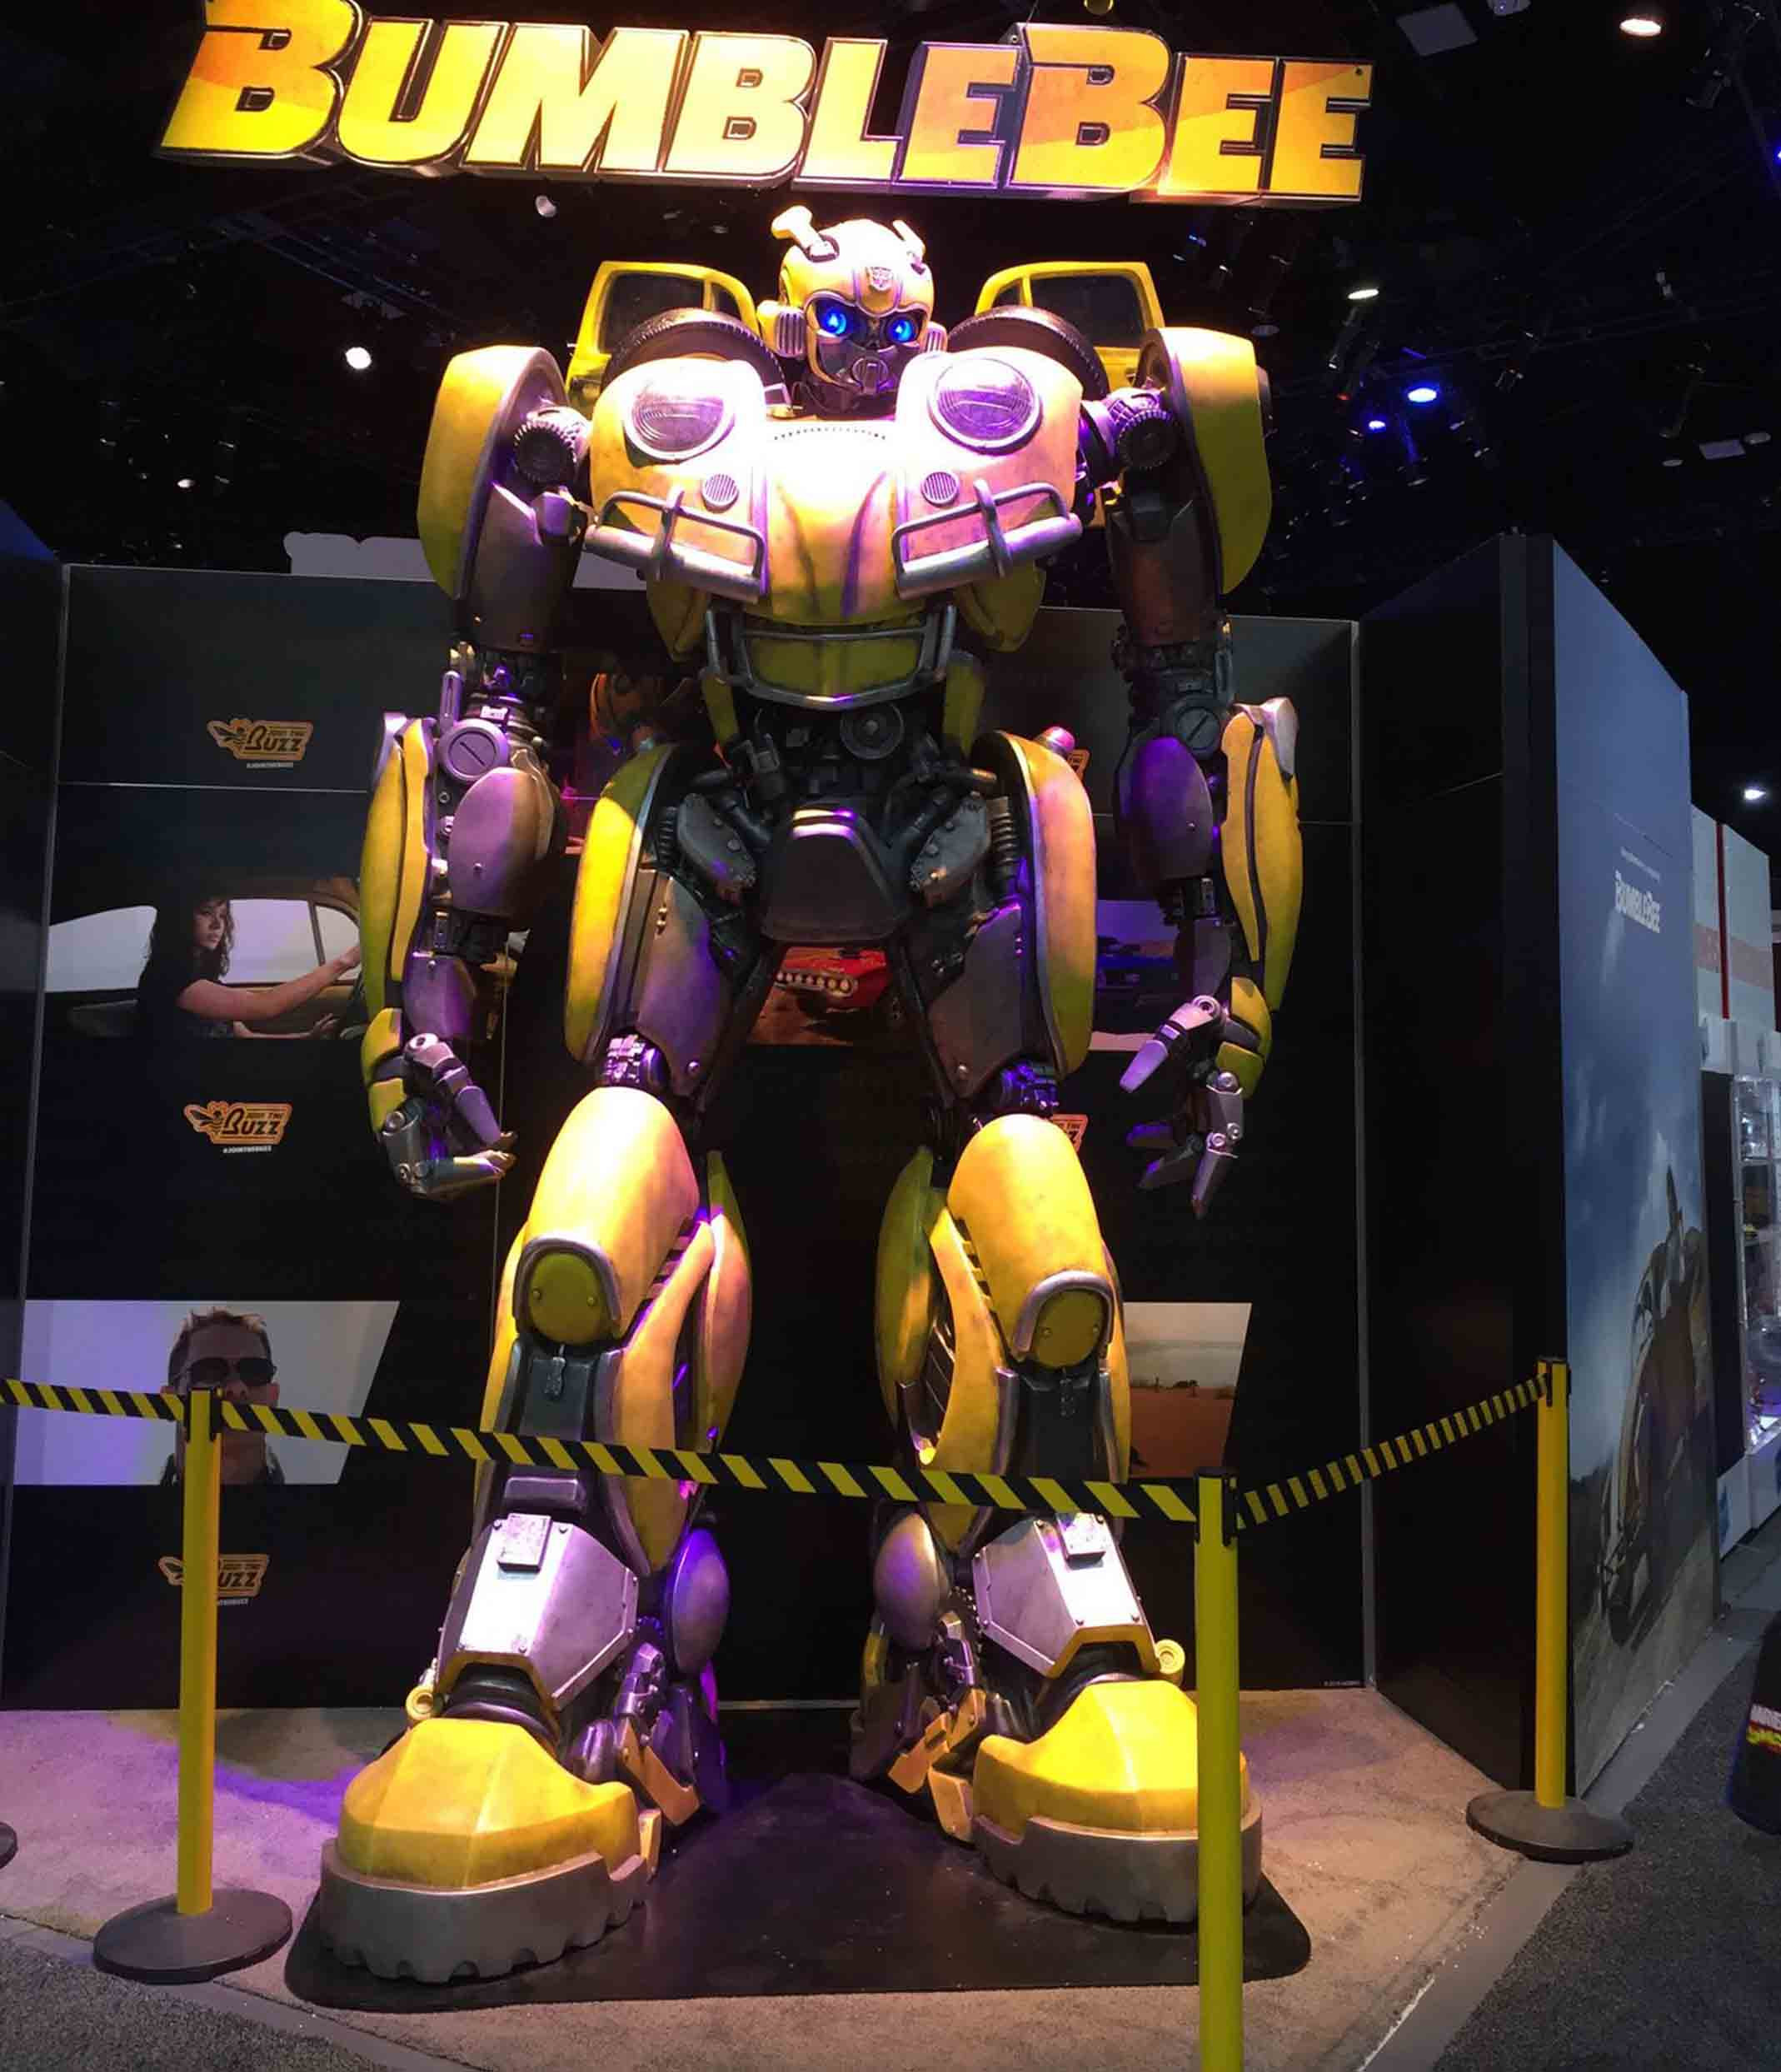 Bumblebee-Paramount Pictures-Designed by Yacine BRINIS-001-3D Printed an painted (pictures taken in San-Diego)